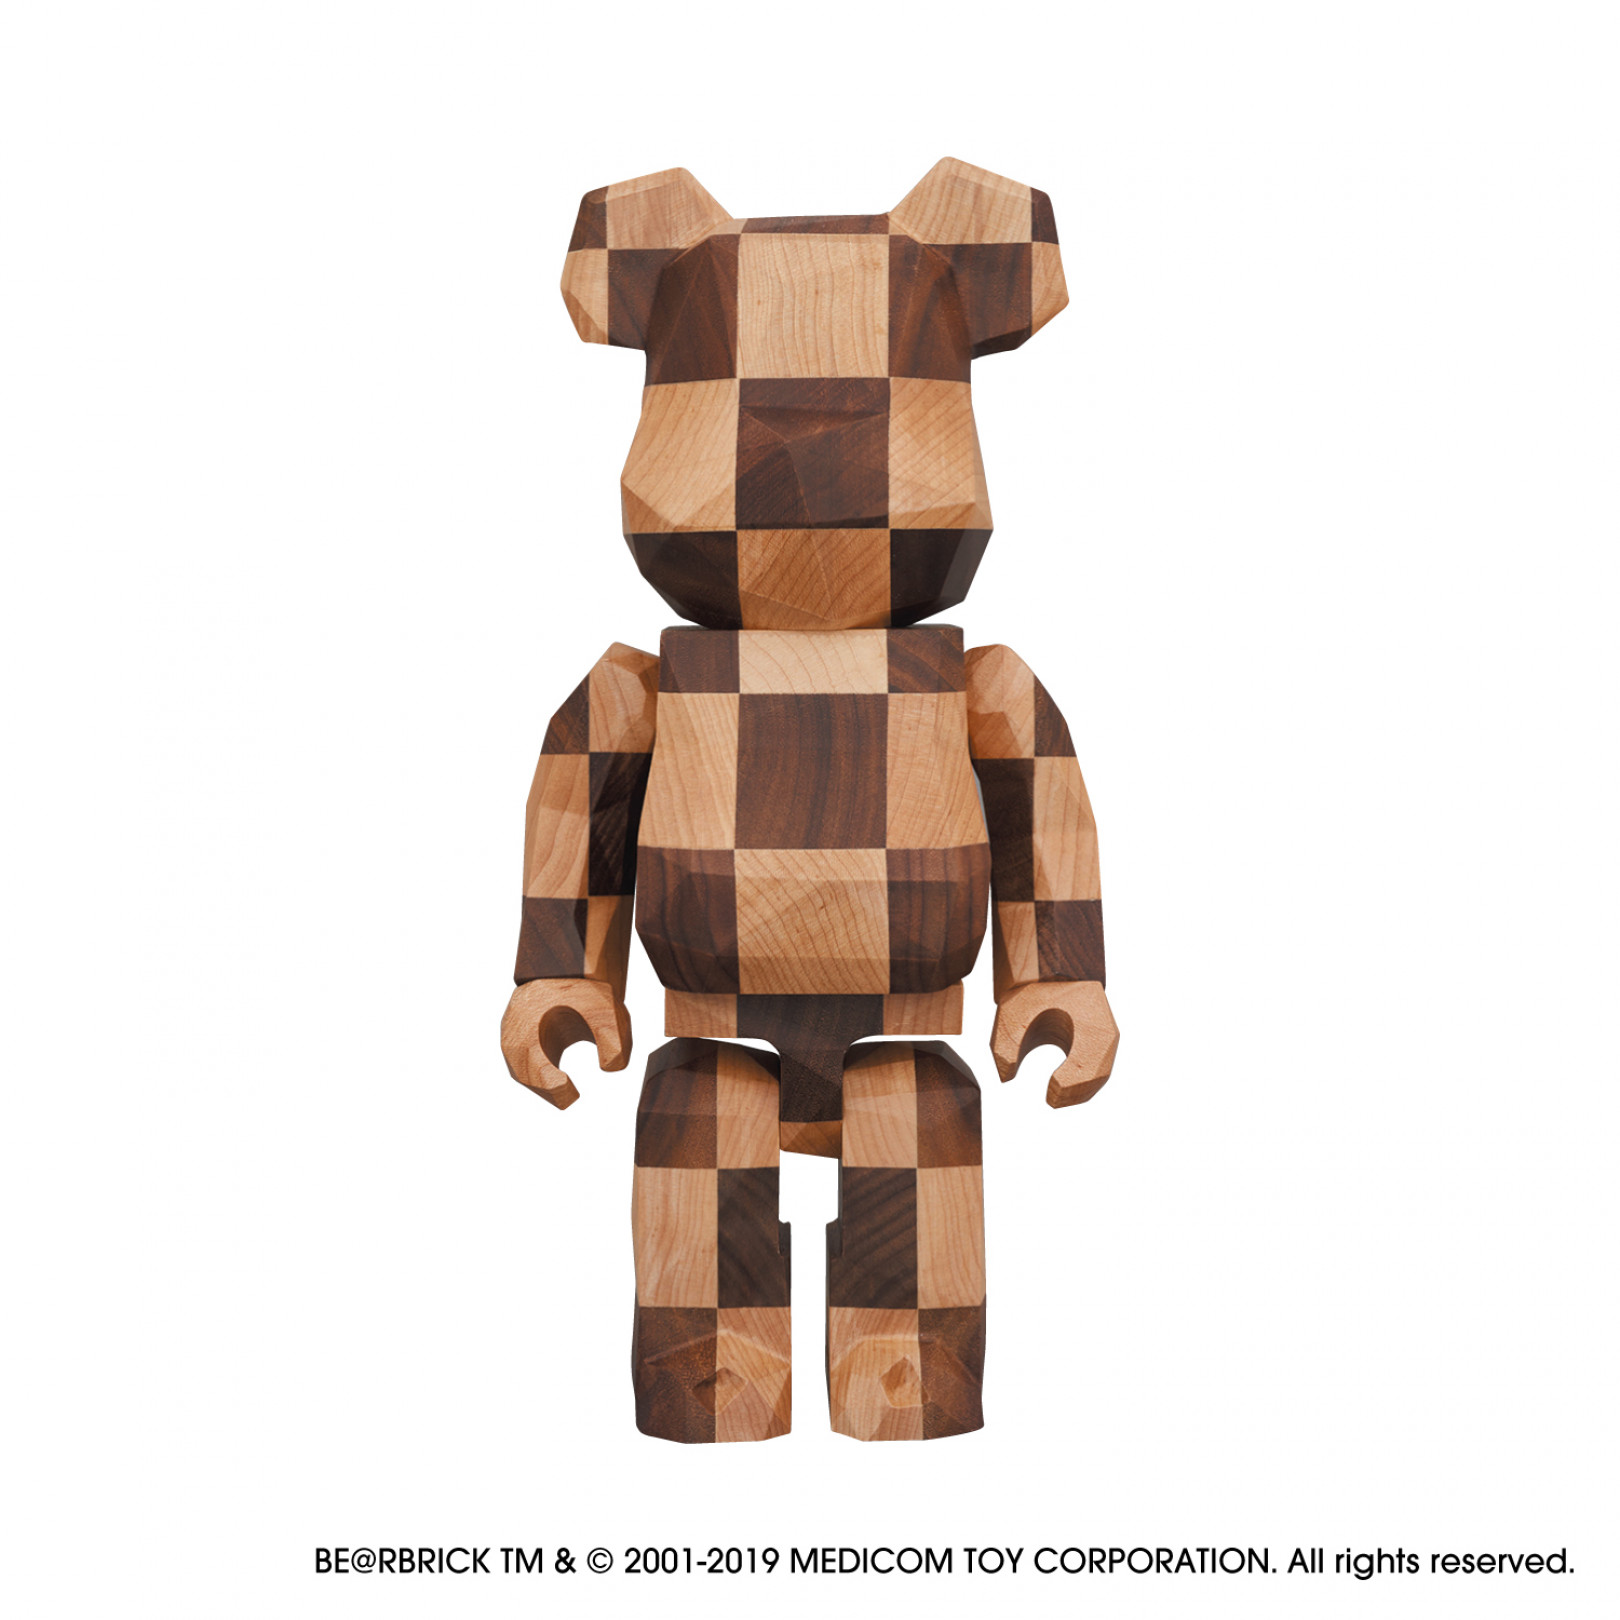 「BE@RBRICK カリモク fragmentdesign 400%」polygon – CHESS(22万円)